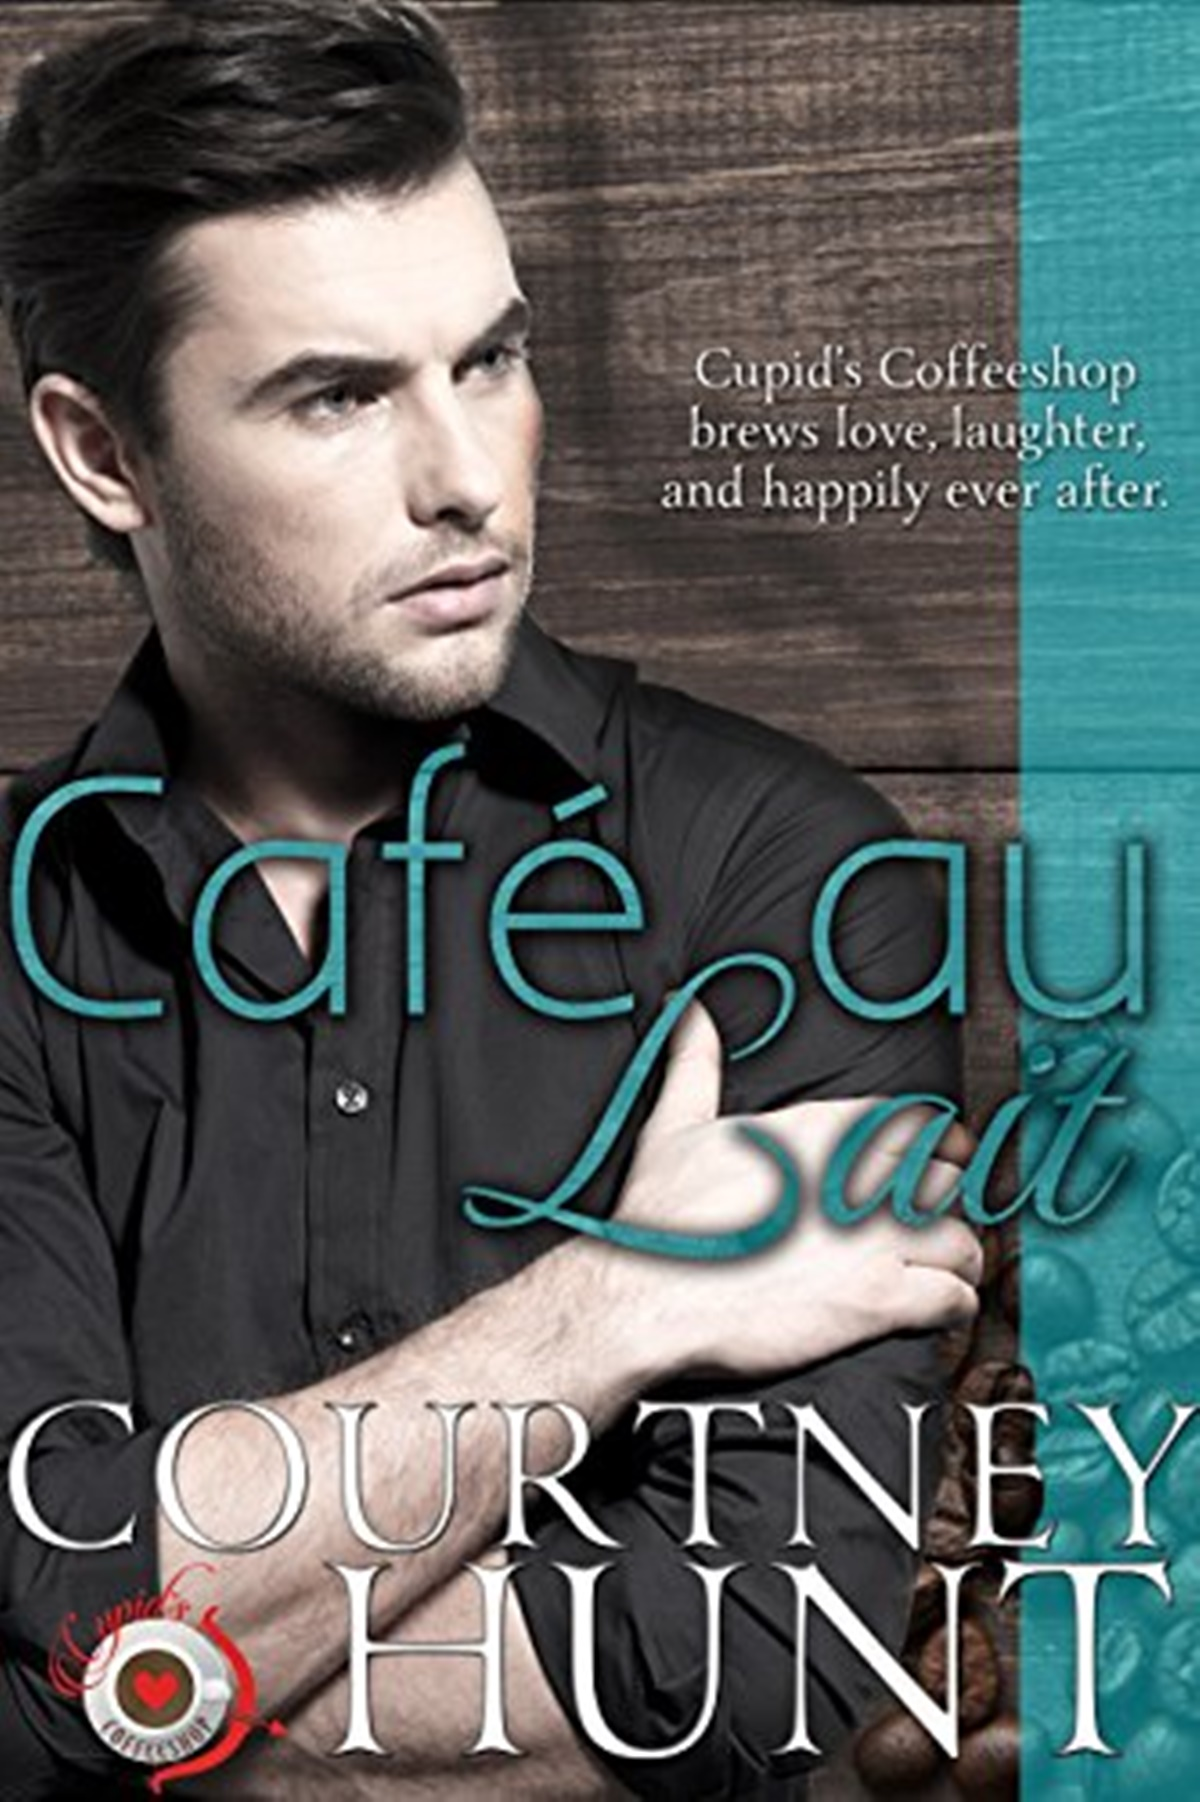 Coffee Shop Romance Novels, cover of Cafe Au Lait by Courtney Hunt, books